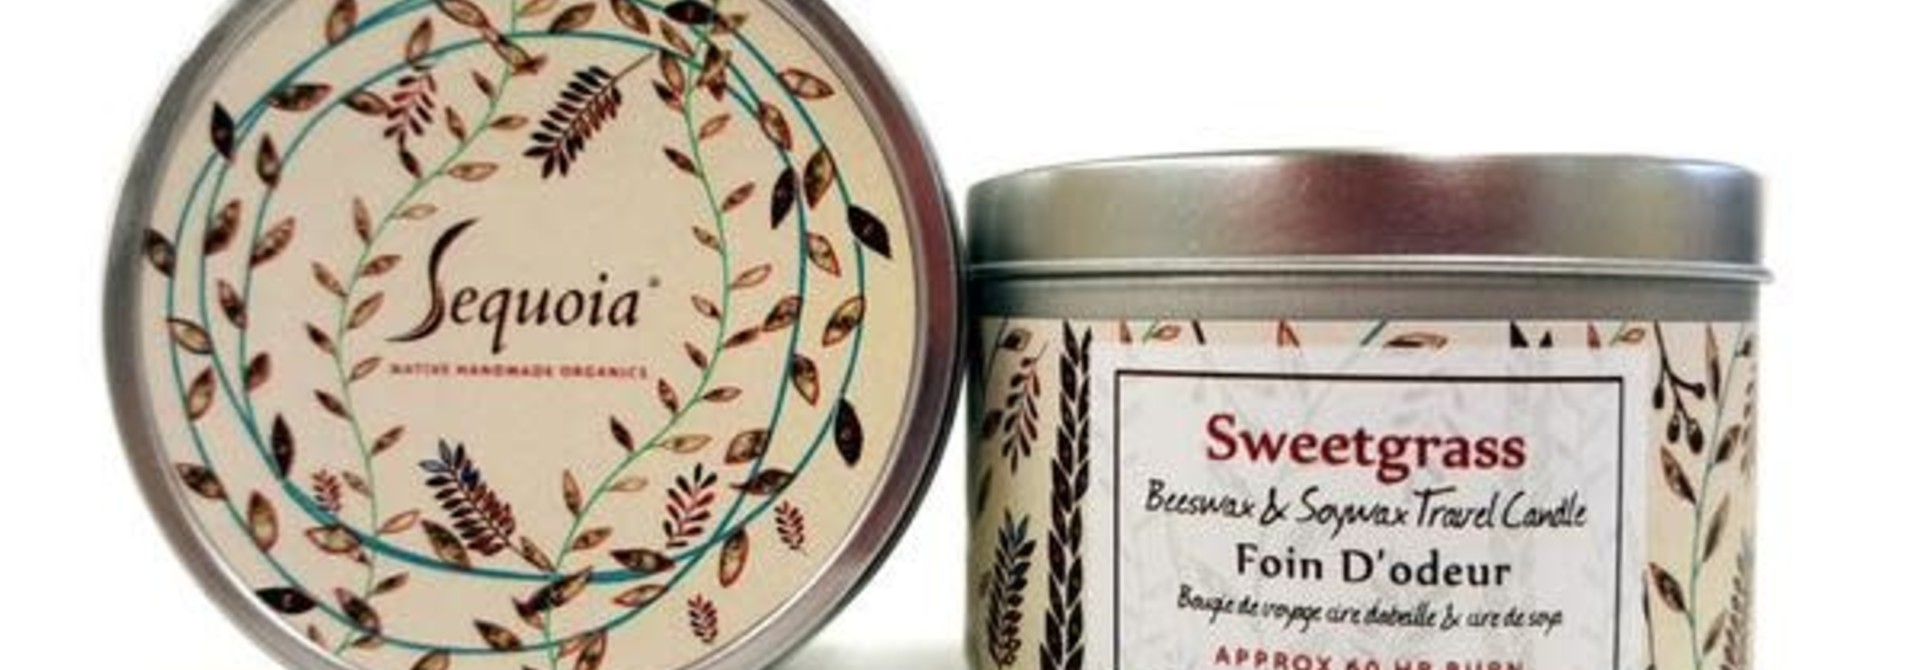 Sequoia 30 hr Candle- Sweetgrass